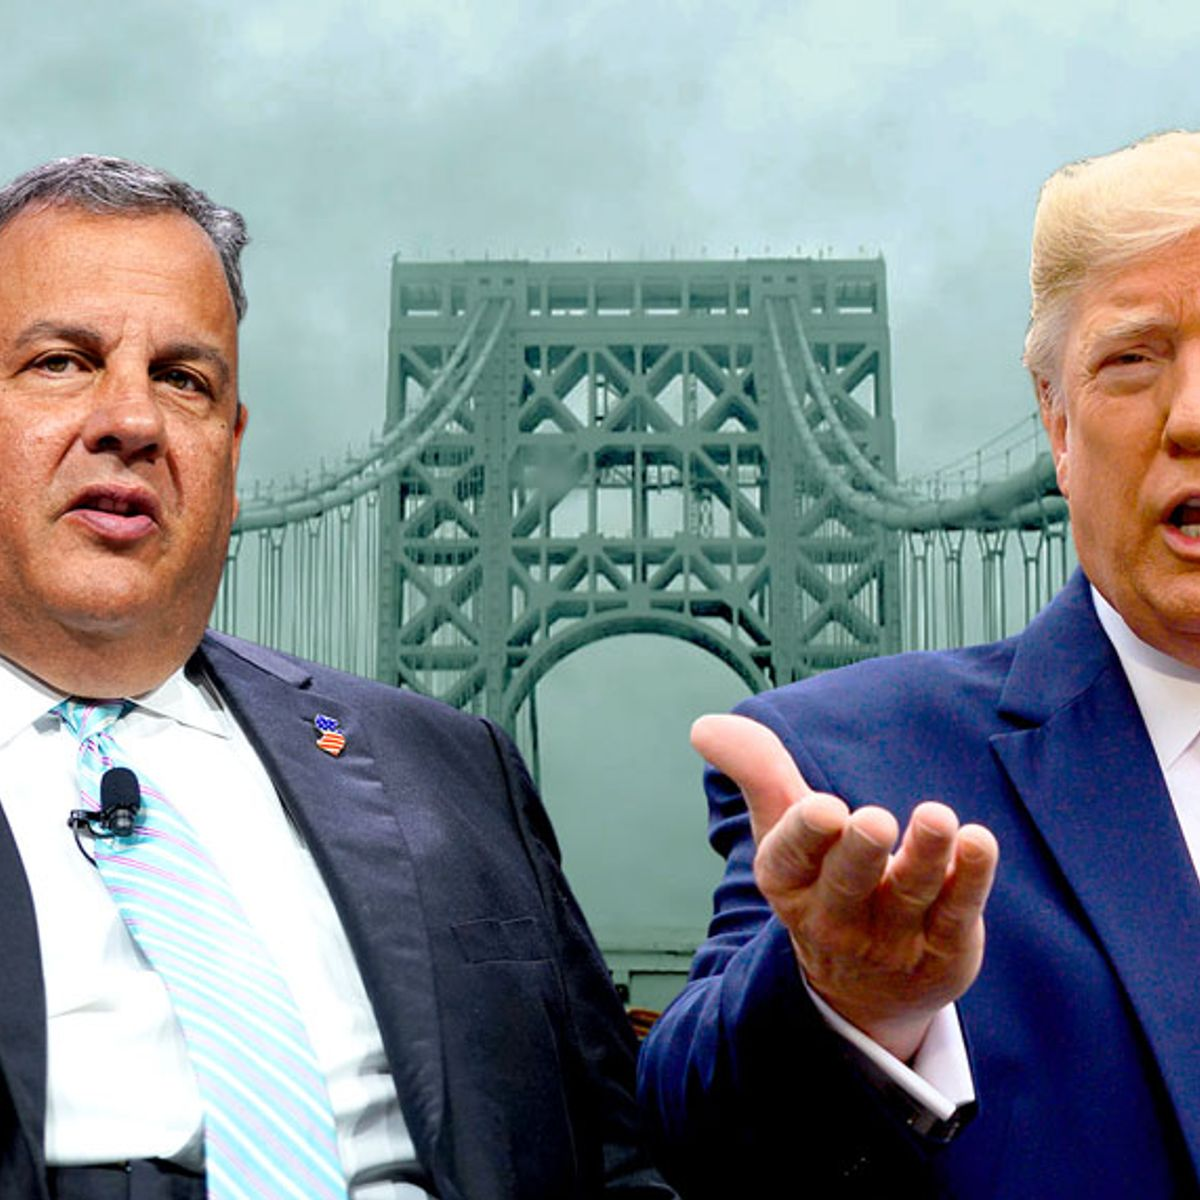 The Jersey roots of Trump's despotic rule